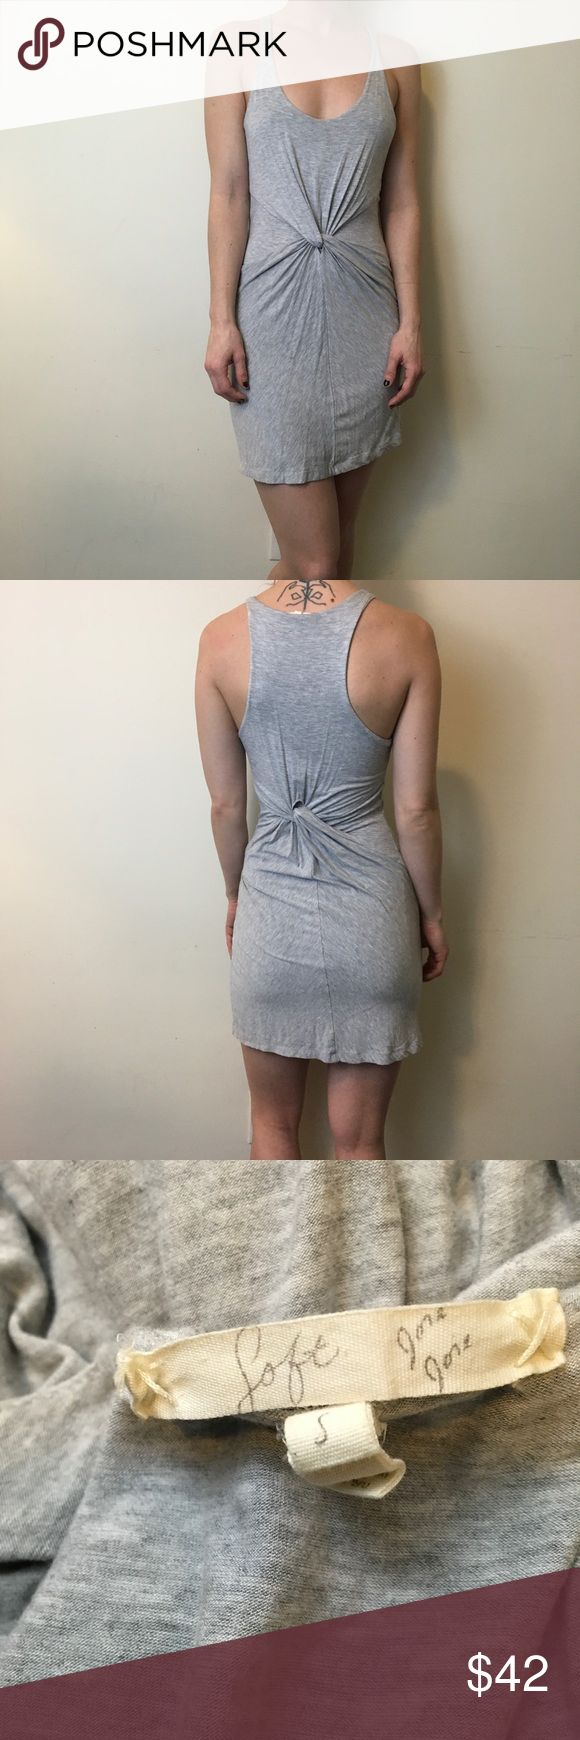 Joie Grey Sleeveless Knotted Mini Dress Joie Dress with a soft cotton body and is Sleeveless. No closures and has a Knotted center front. Super cute and is layered and a size small! Worn lightly and has no obvious flaws! Joie Dresses Mini